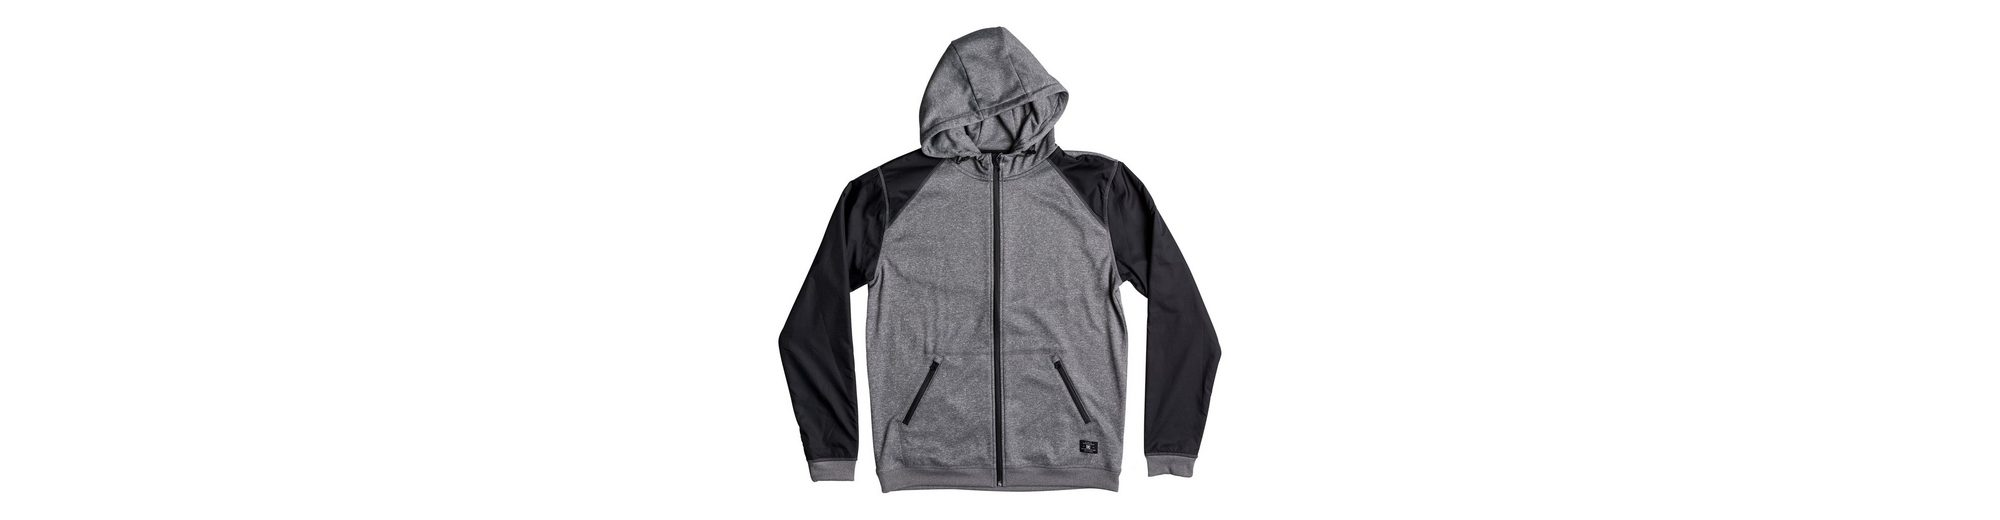 DC Shoes Zip-Up Fleece Wentley Wo Zu Kaufen J8bn4d